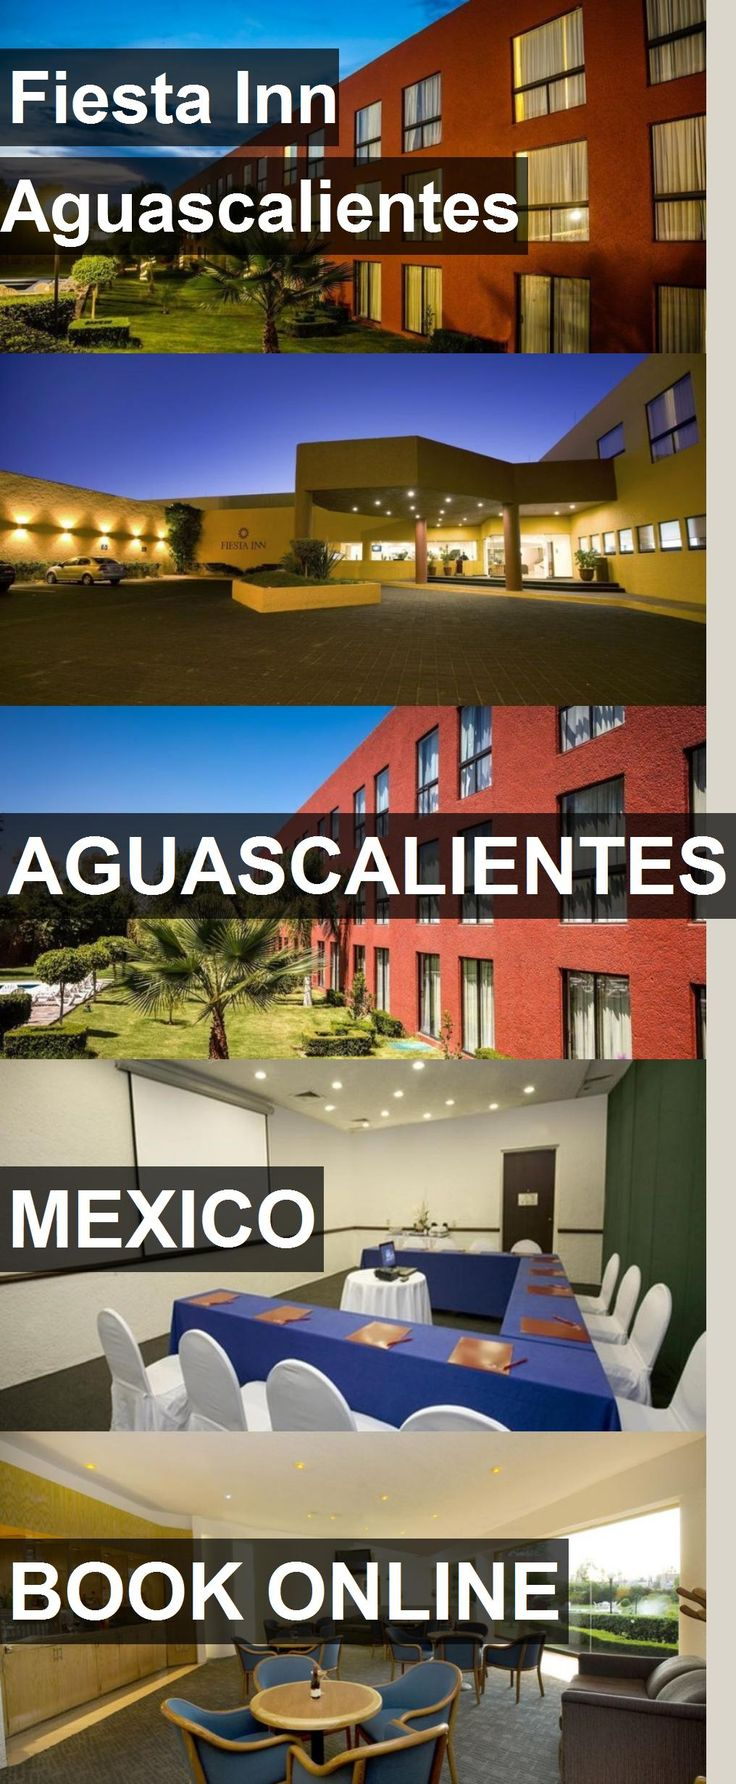 Hotel Fiesta Inn Aguascalientes in Aguascalientes, Mexico. For more information, photos, reviews and best prices please follow the link. #Mexico #Aguascalientes #travel #vacation #hotel